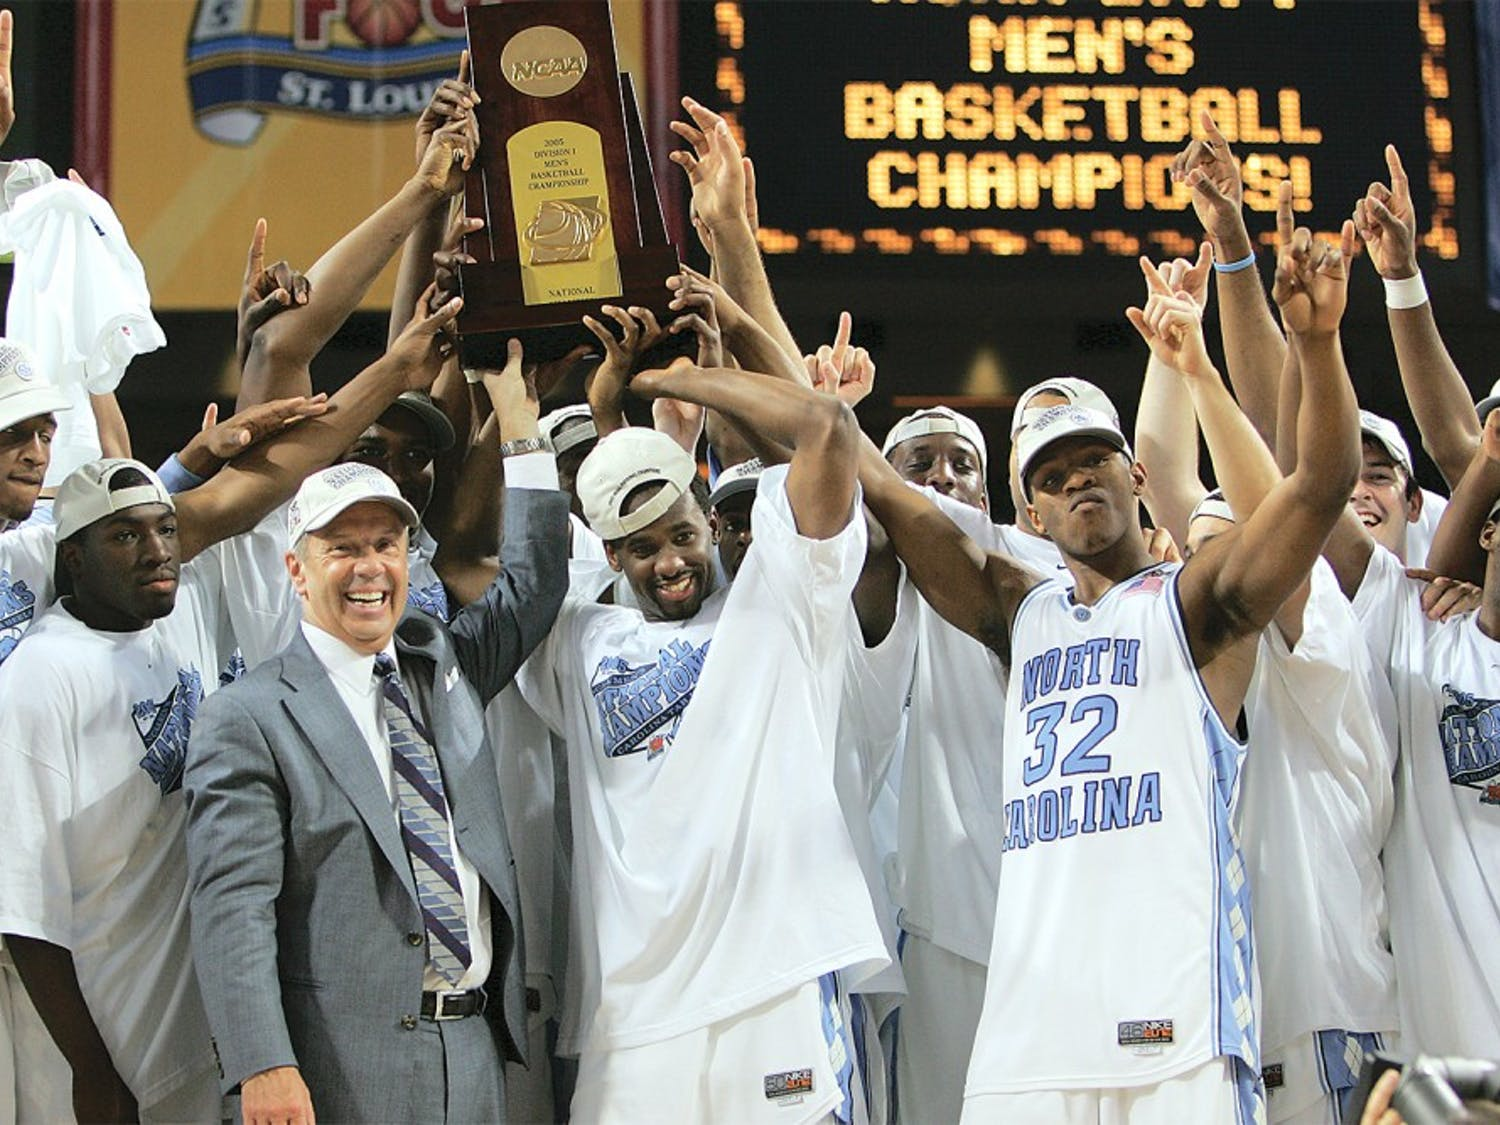 DTH Archive. The 2005 National Championship team receives the title trophy following their 75-70 victory over Illinois, at the Edward Jones Dome in St. Louis, Missouri on April 4, 2005.